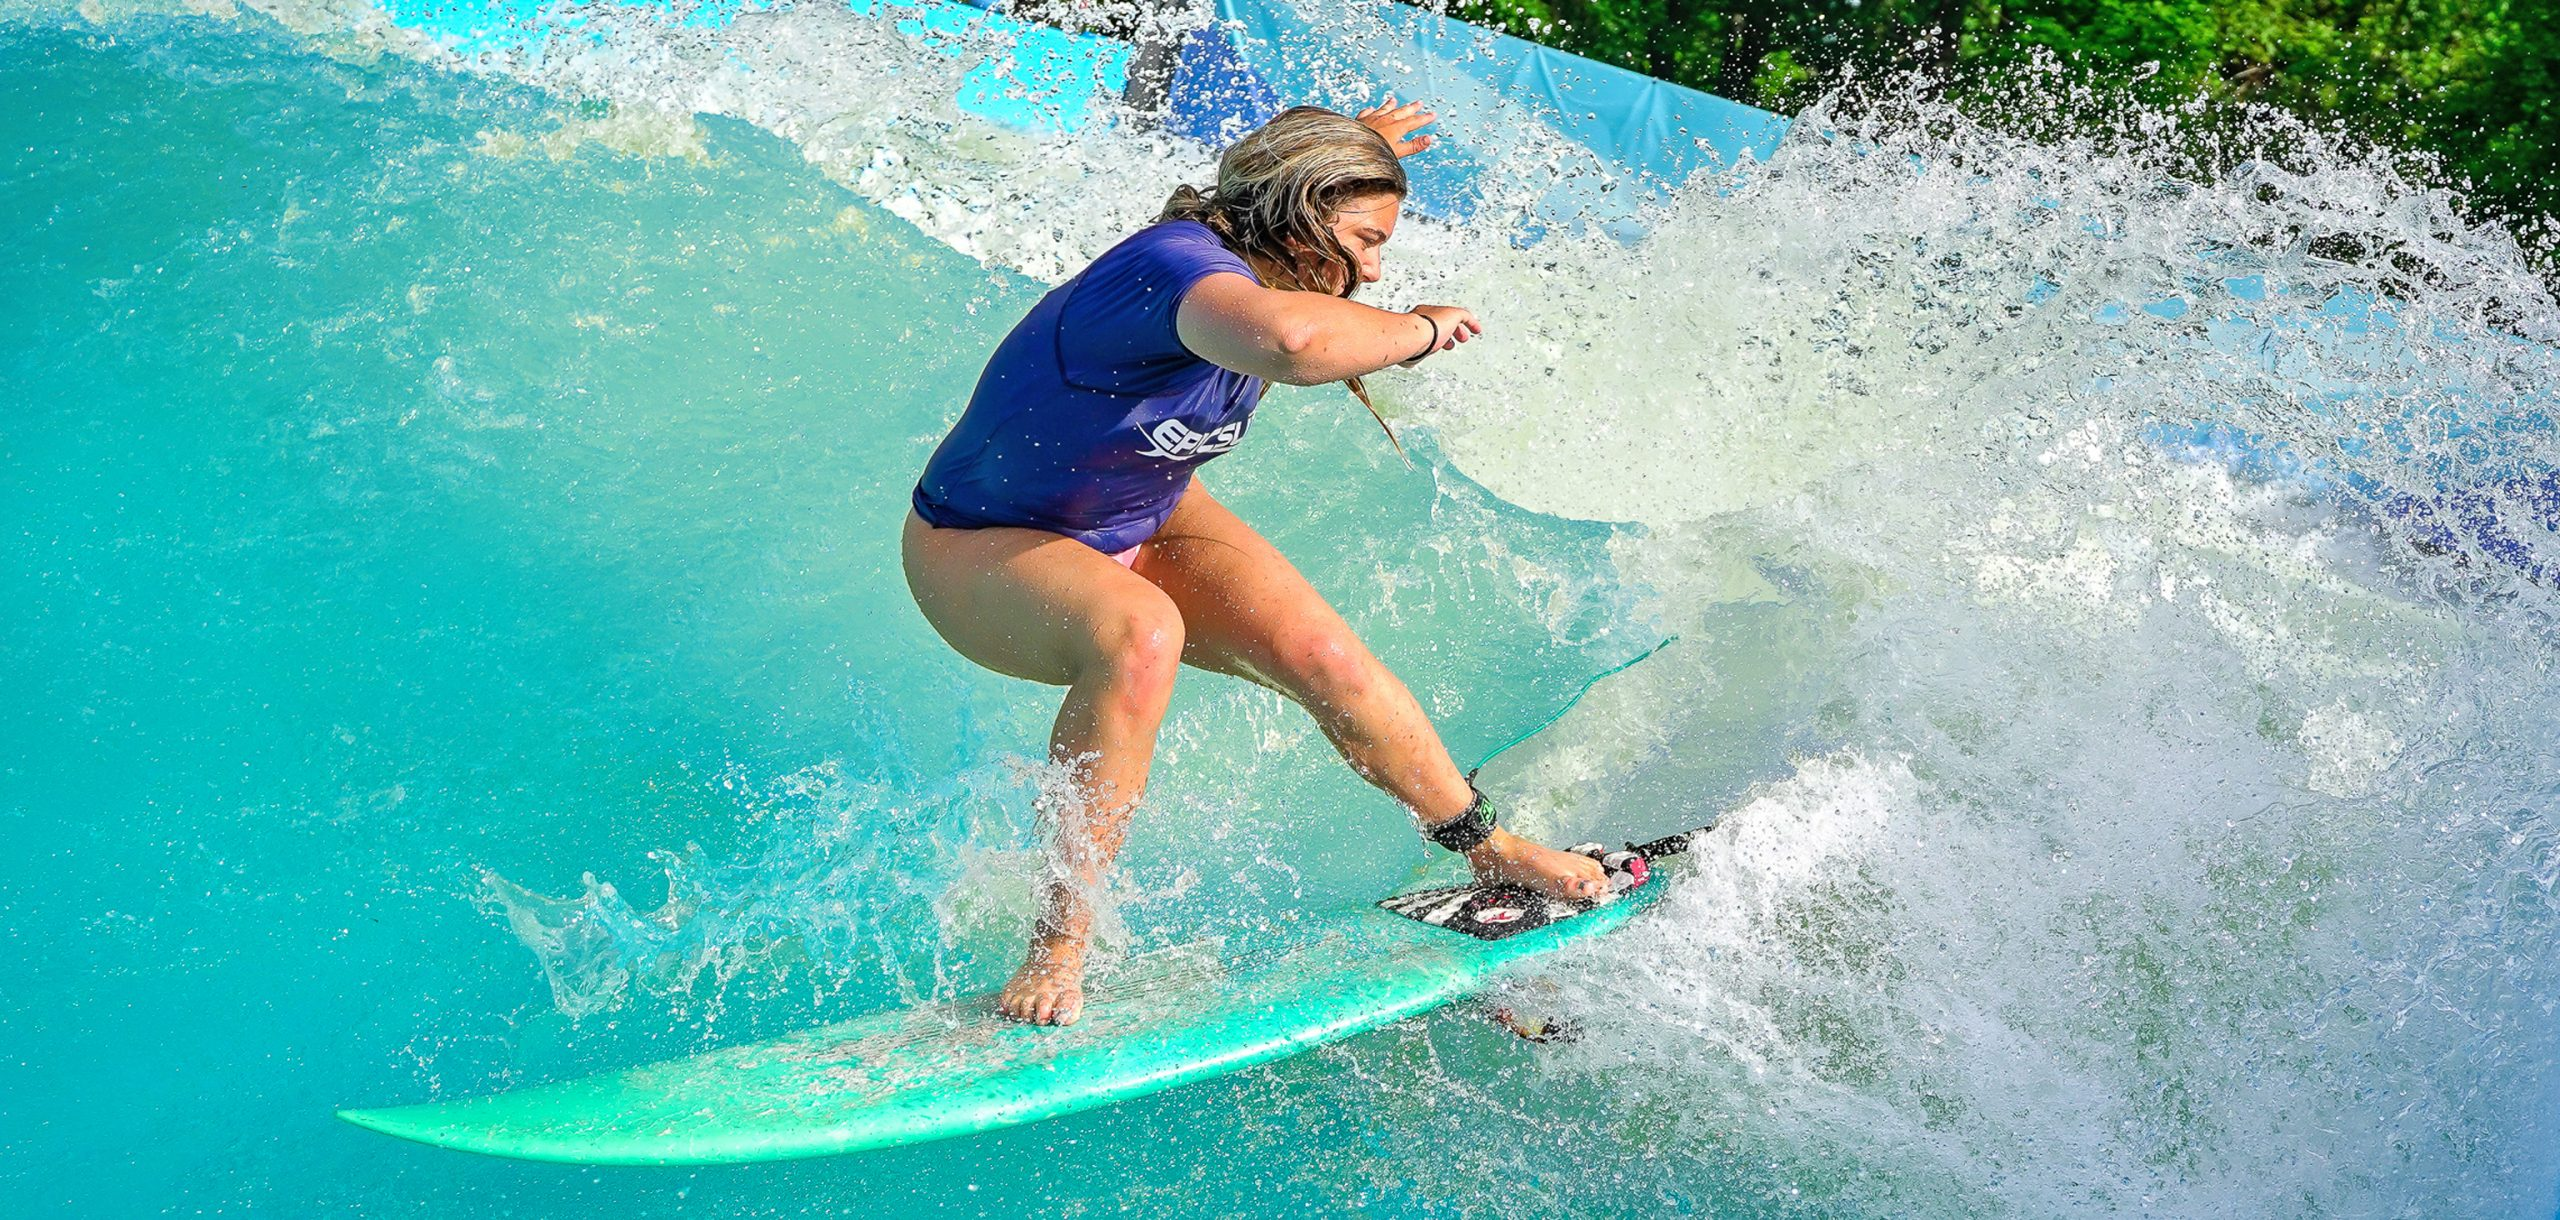 girl carving on epicsurf deep water surf wave